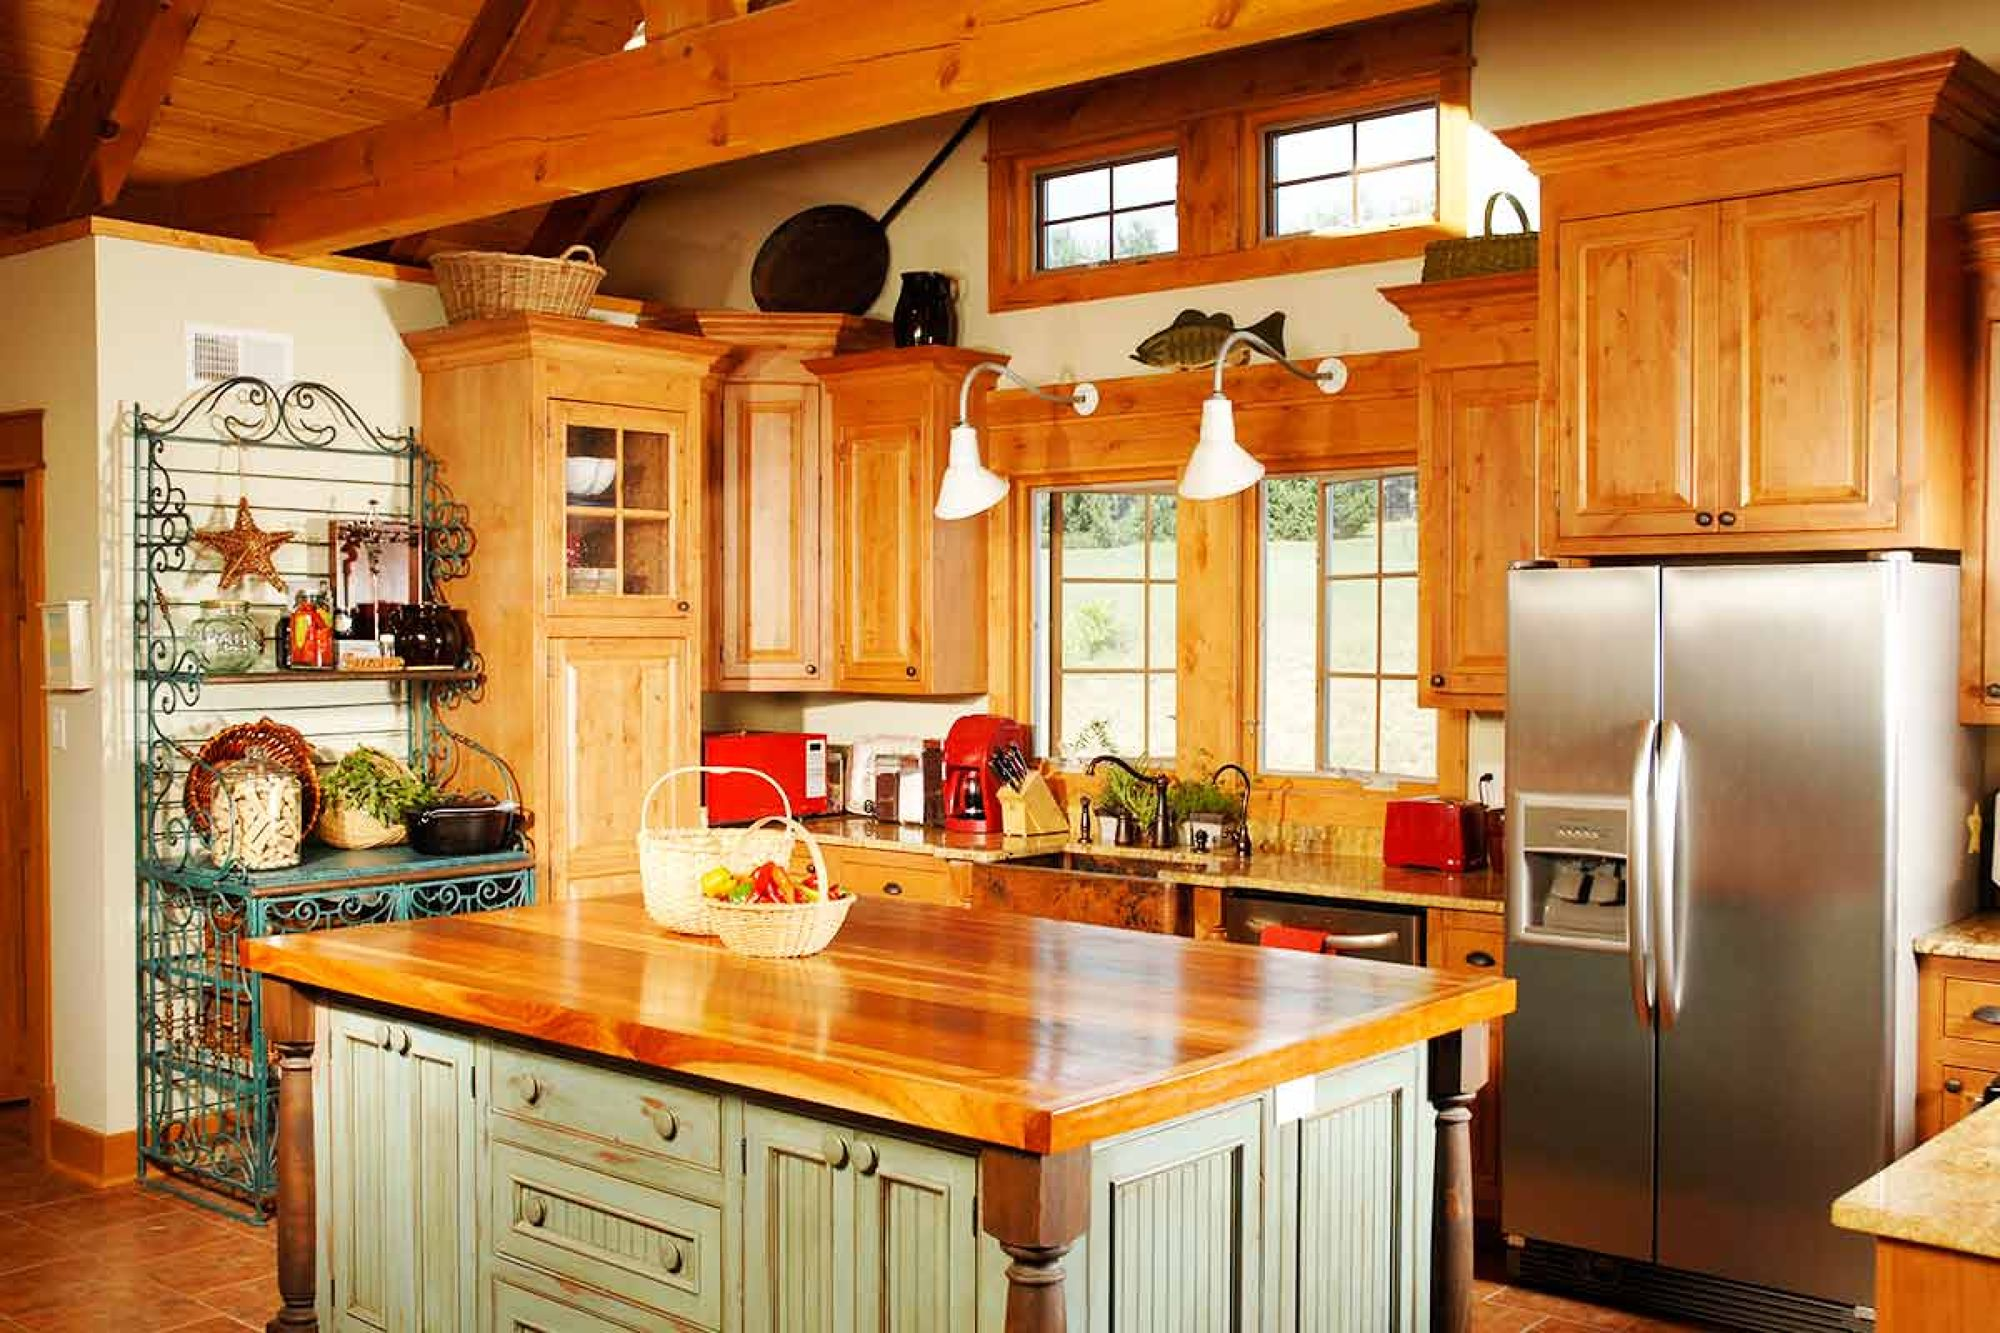 Cabinets and countertops articles diy cabinets and countertops tips videos - Glass kitchen countertops pros and cons ...